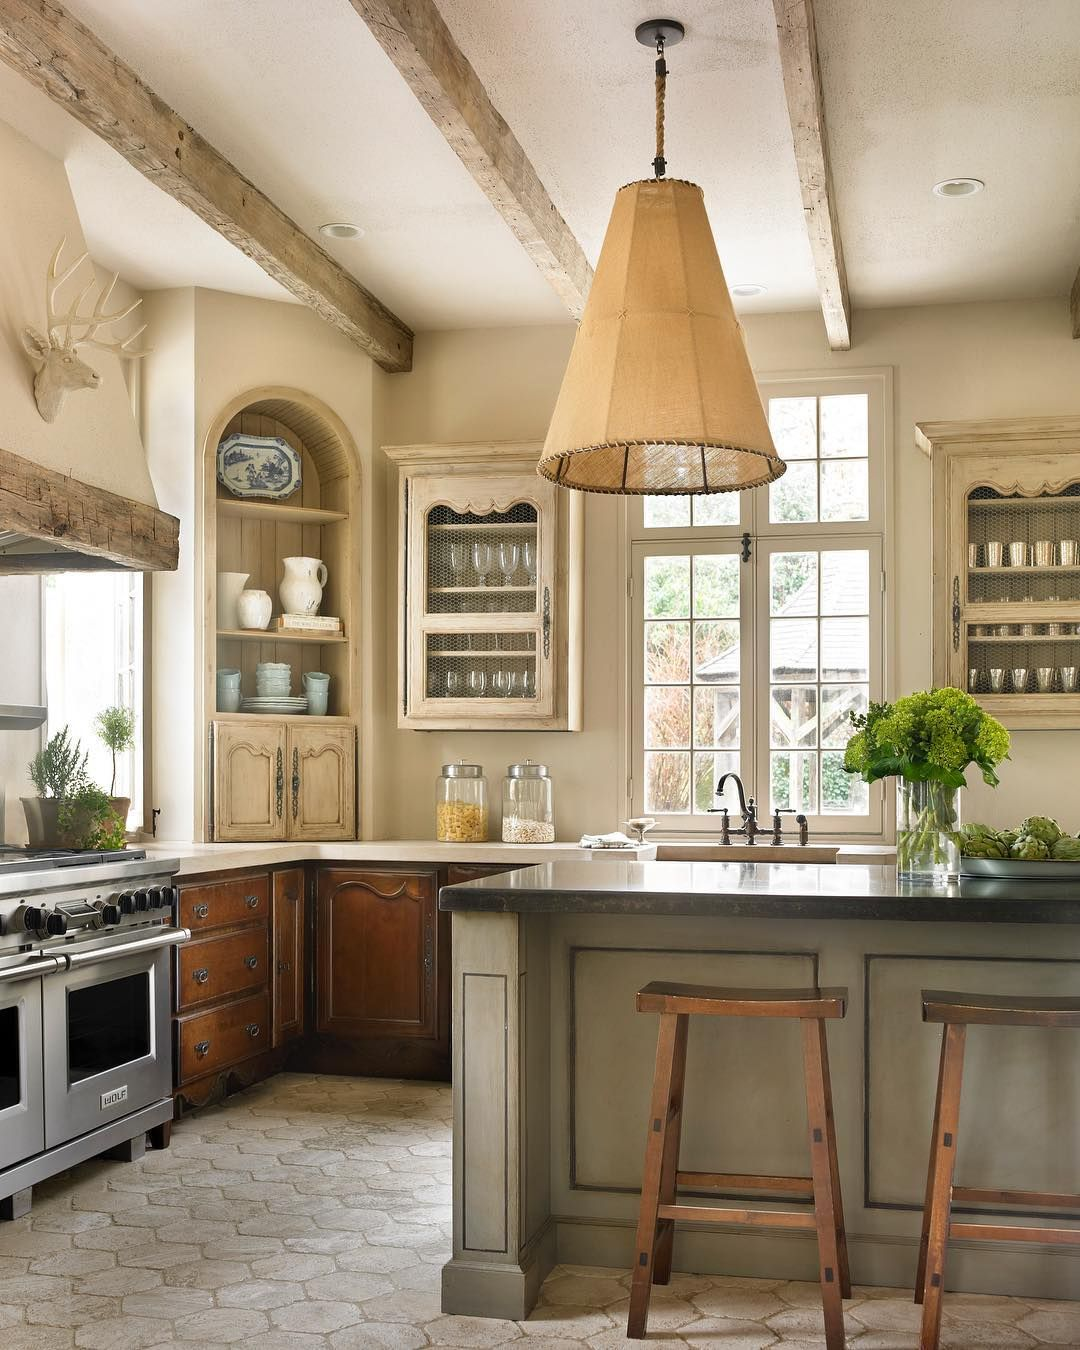 Country French Kitchens: Pin By Tina Tonkin On Design